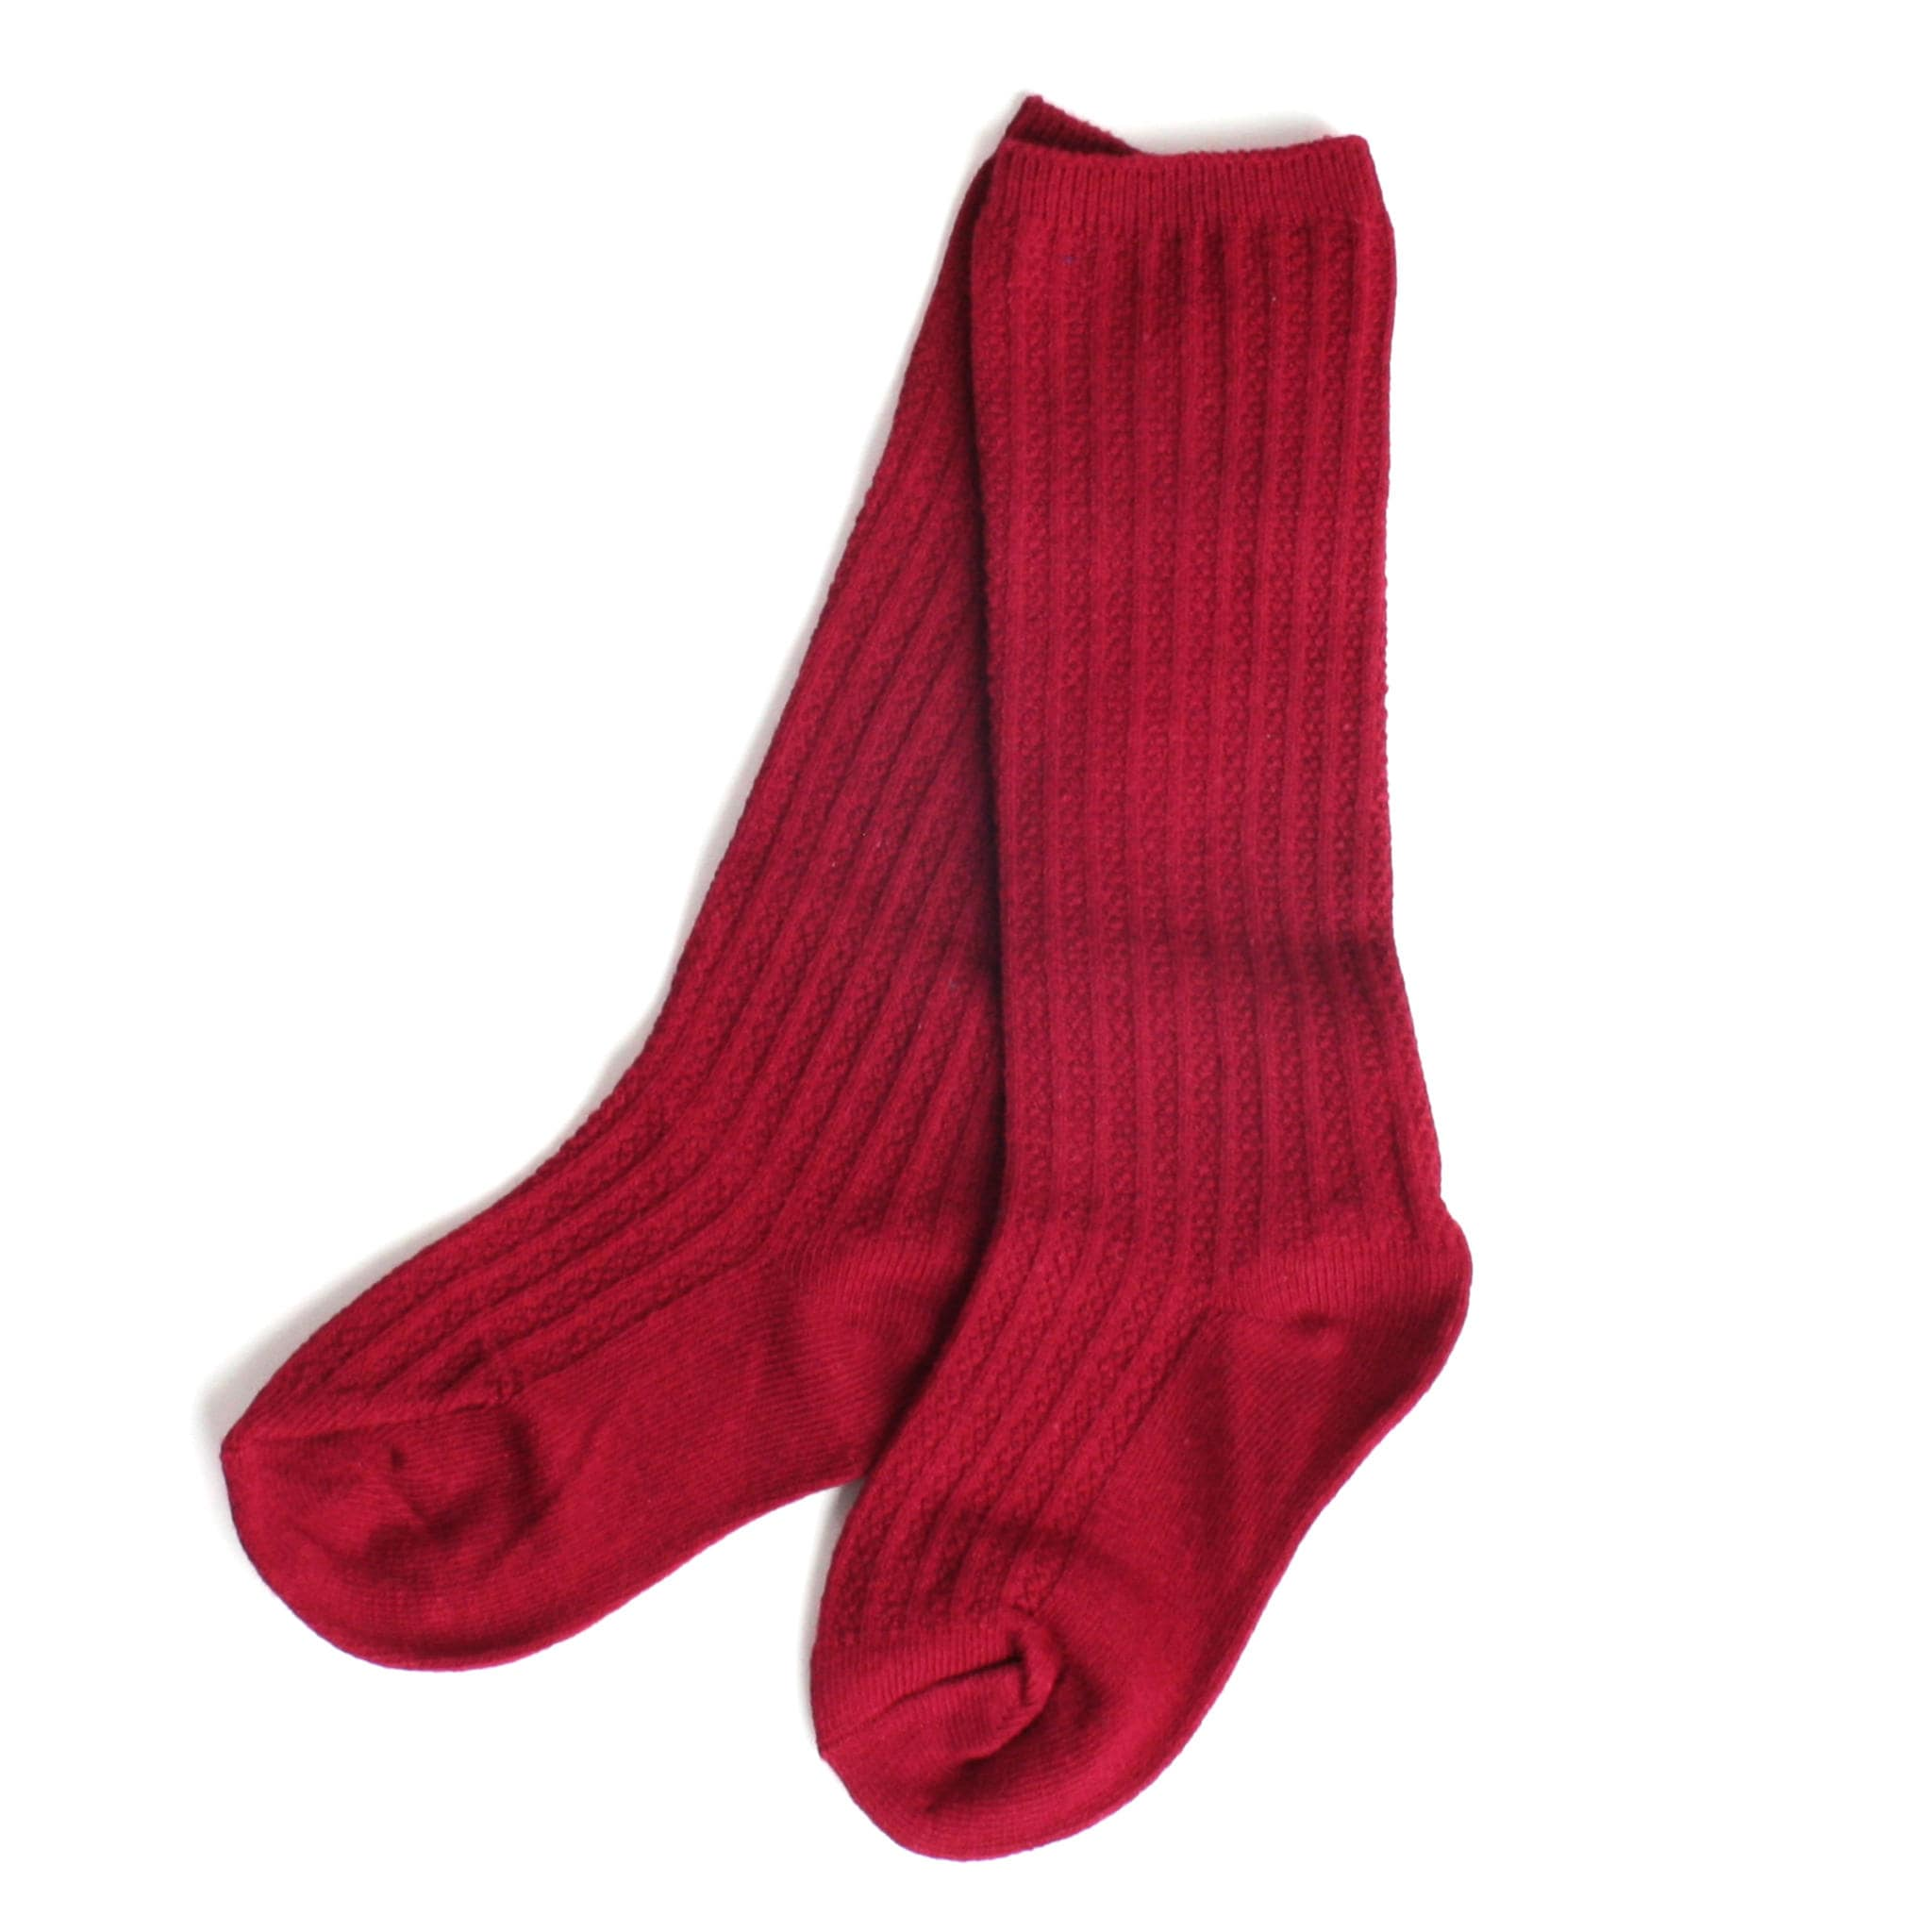 Unisex knees socks in red for kids